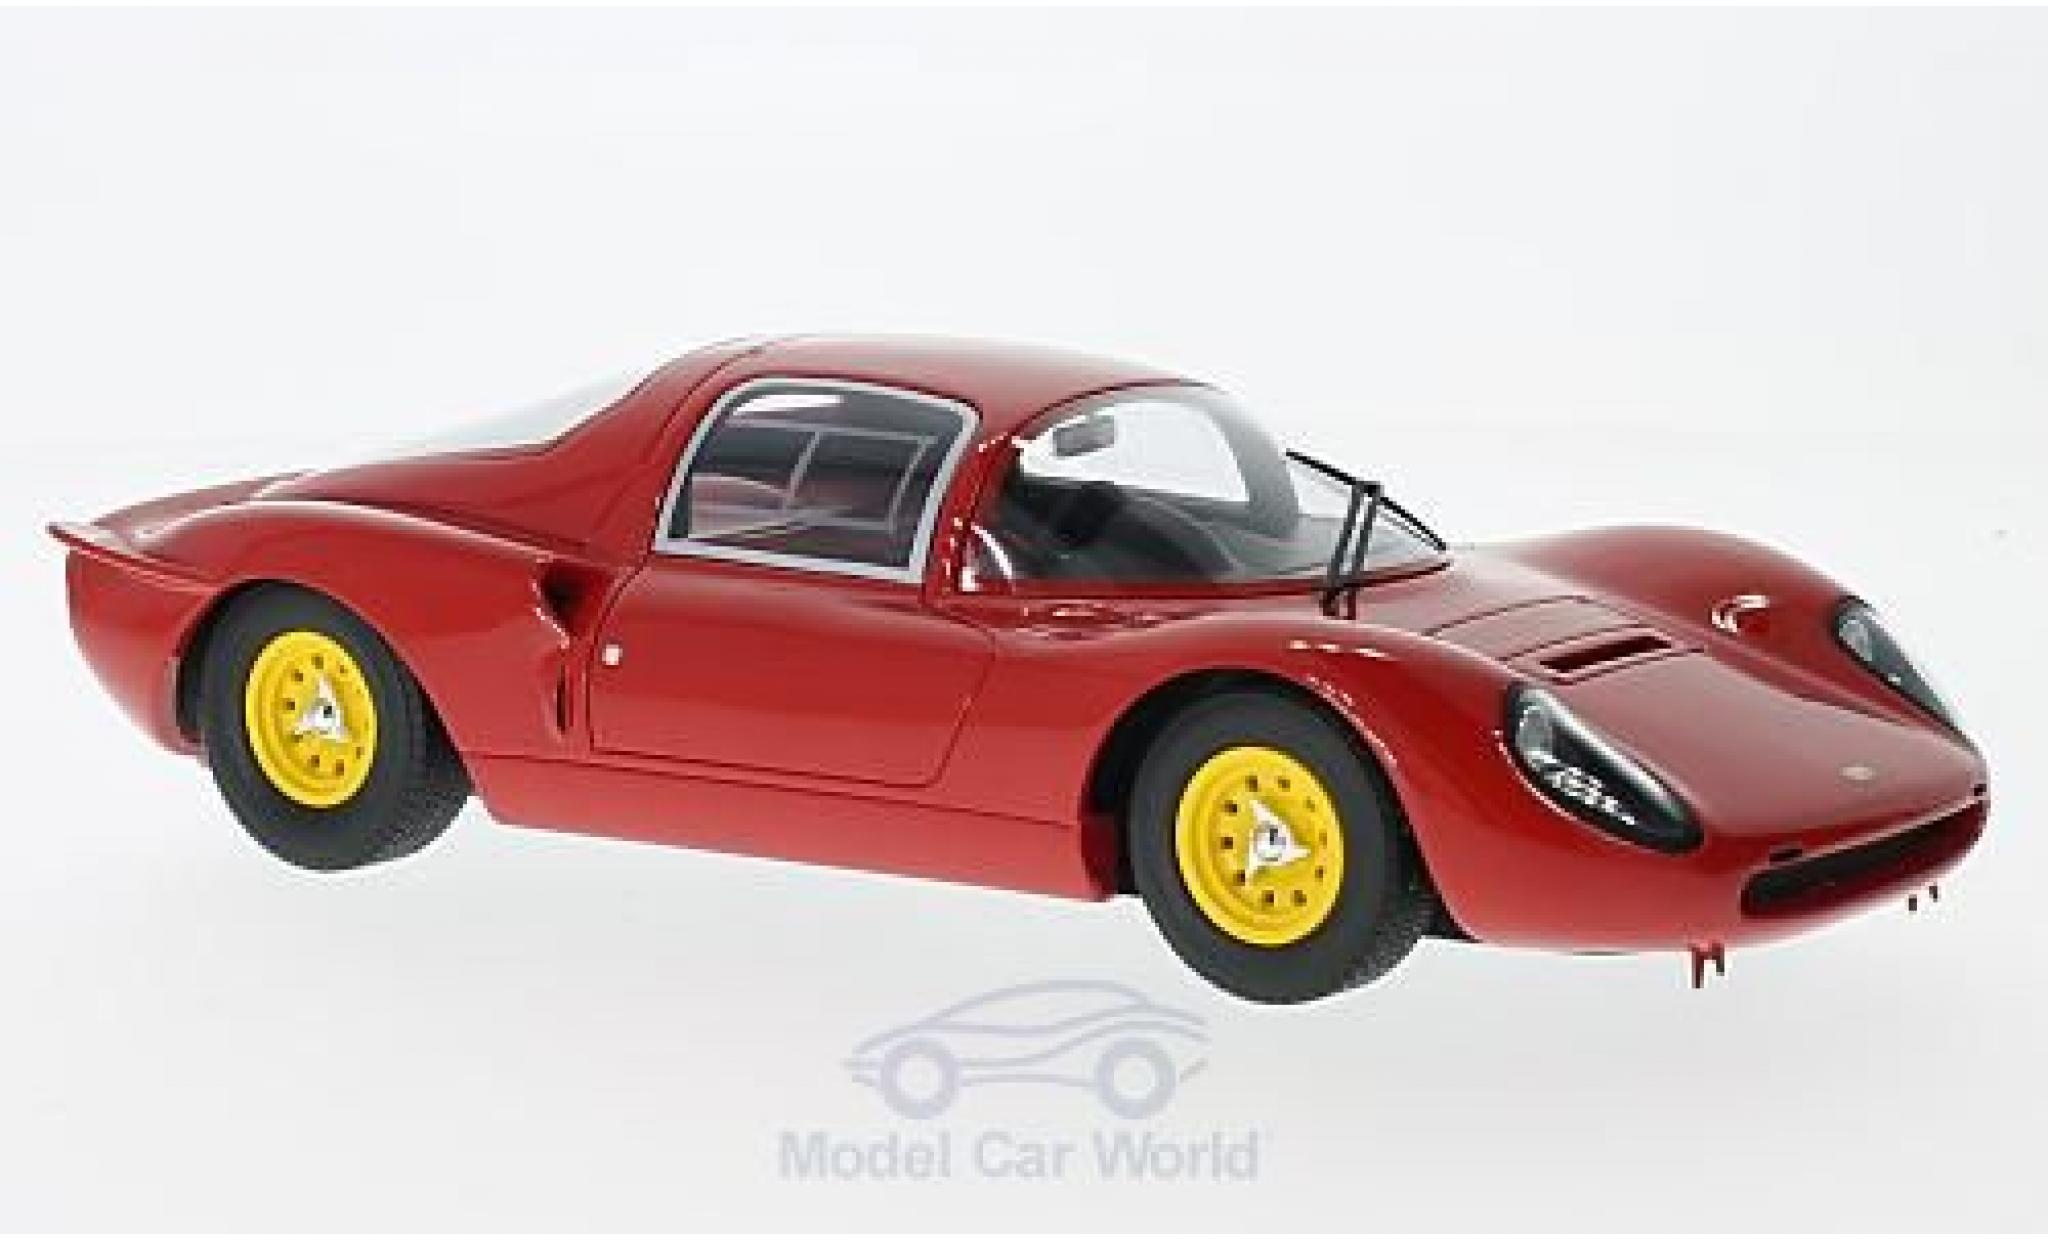 Ferrari 206 1/18 CMR S rouge 1966 Plain Body Version